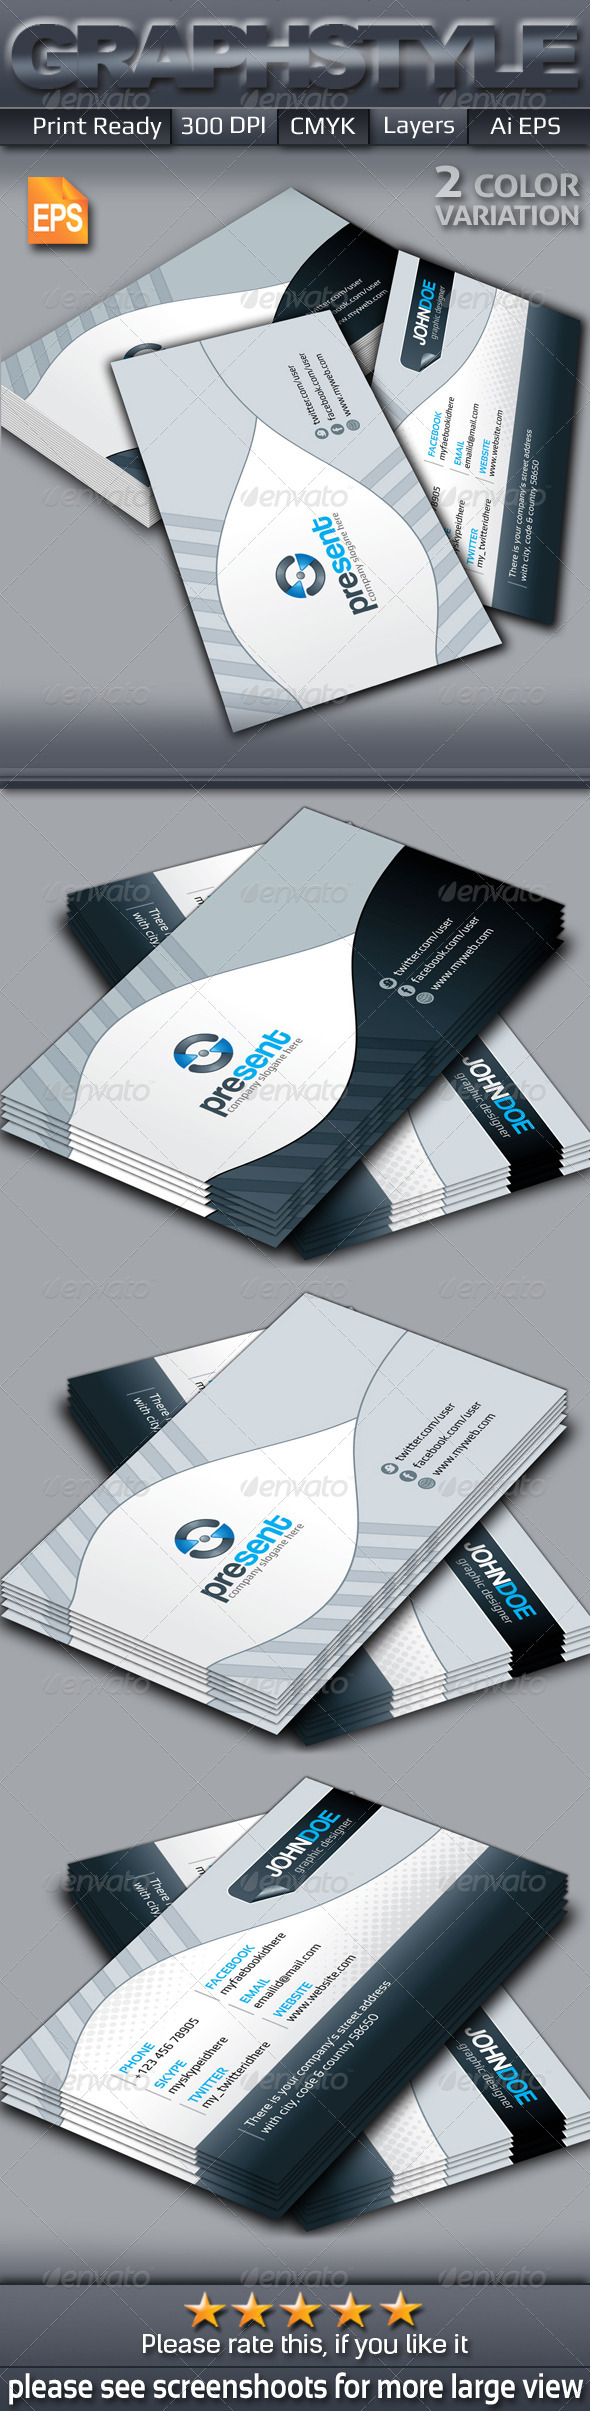 GraphicRiver Present creative business card 6719346